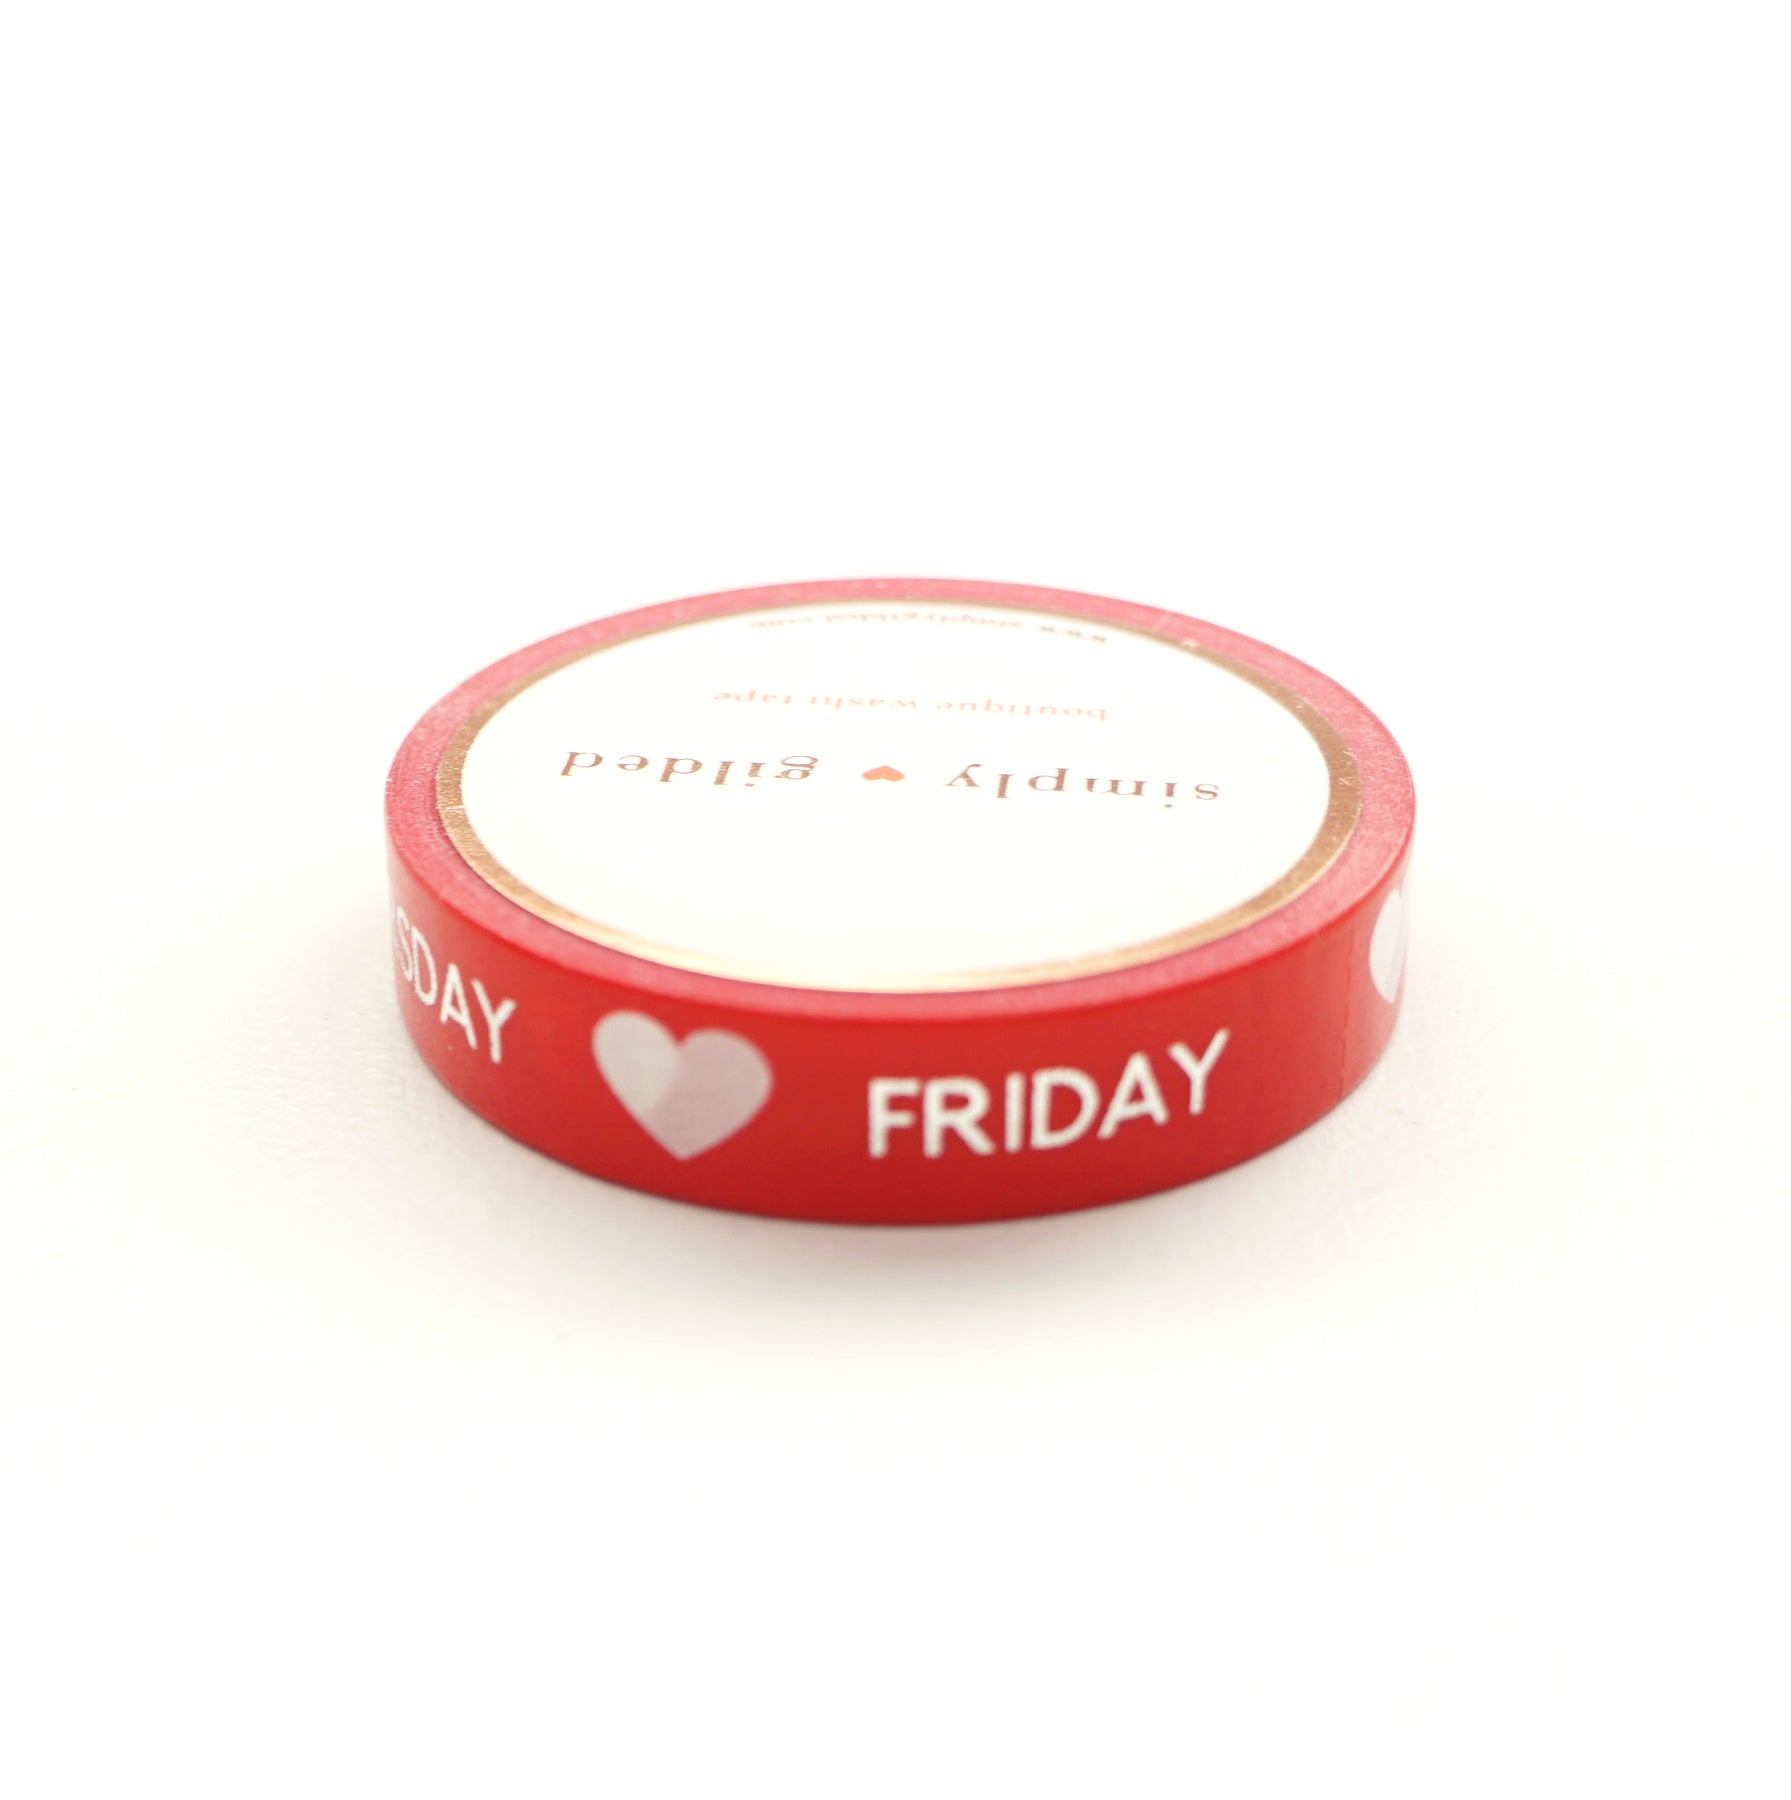 PERFORATED WASHI TAPE 10mm - DAYS of the WEEK Classic Red + silver foil text